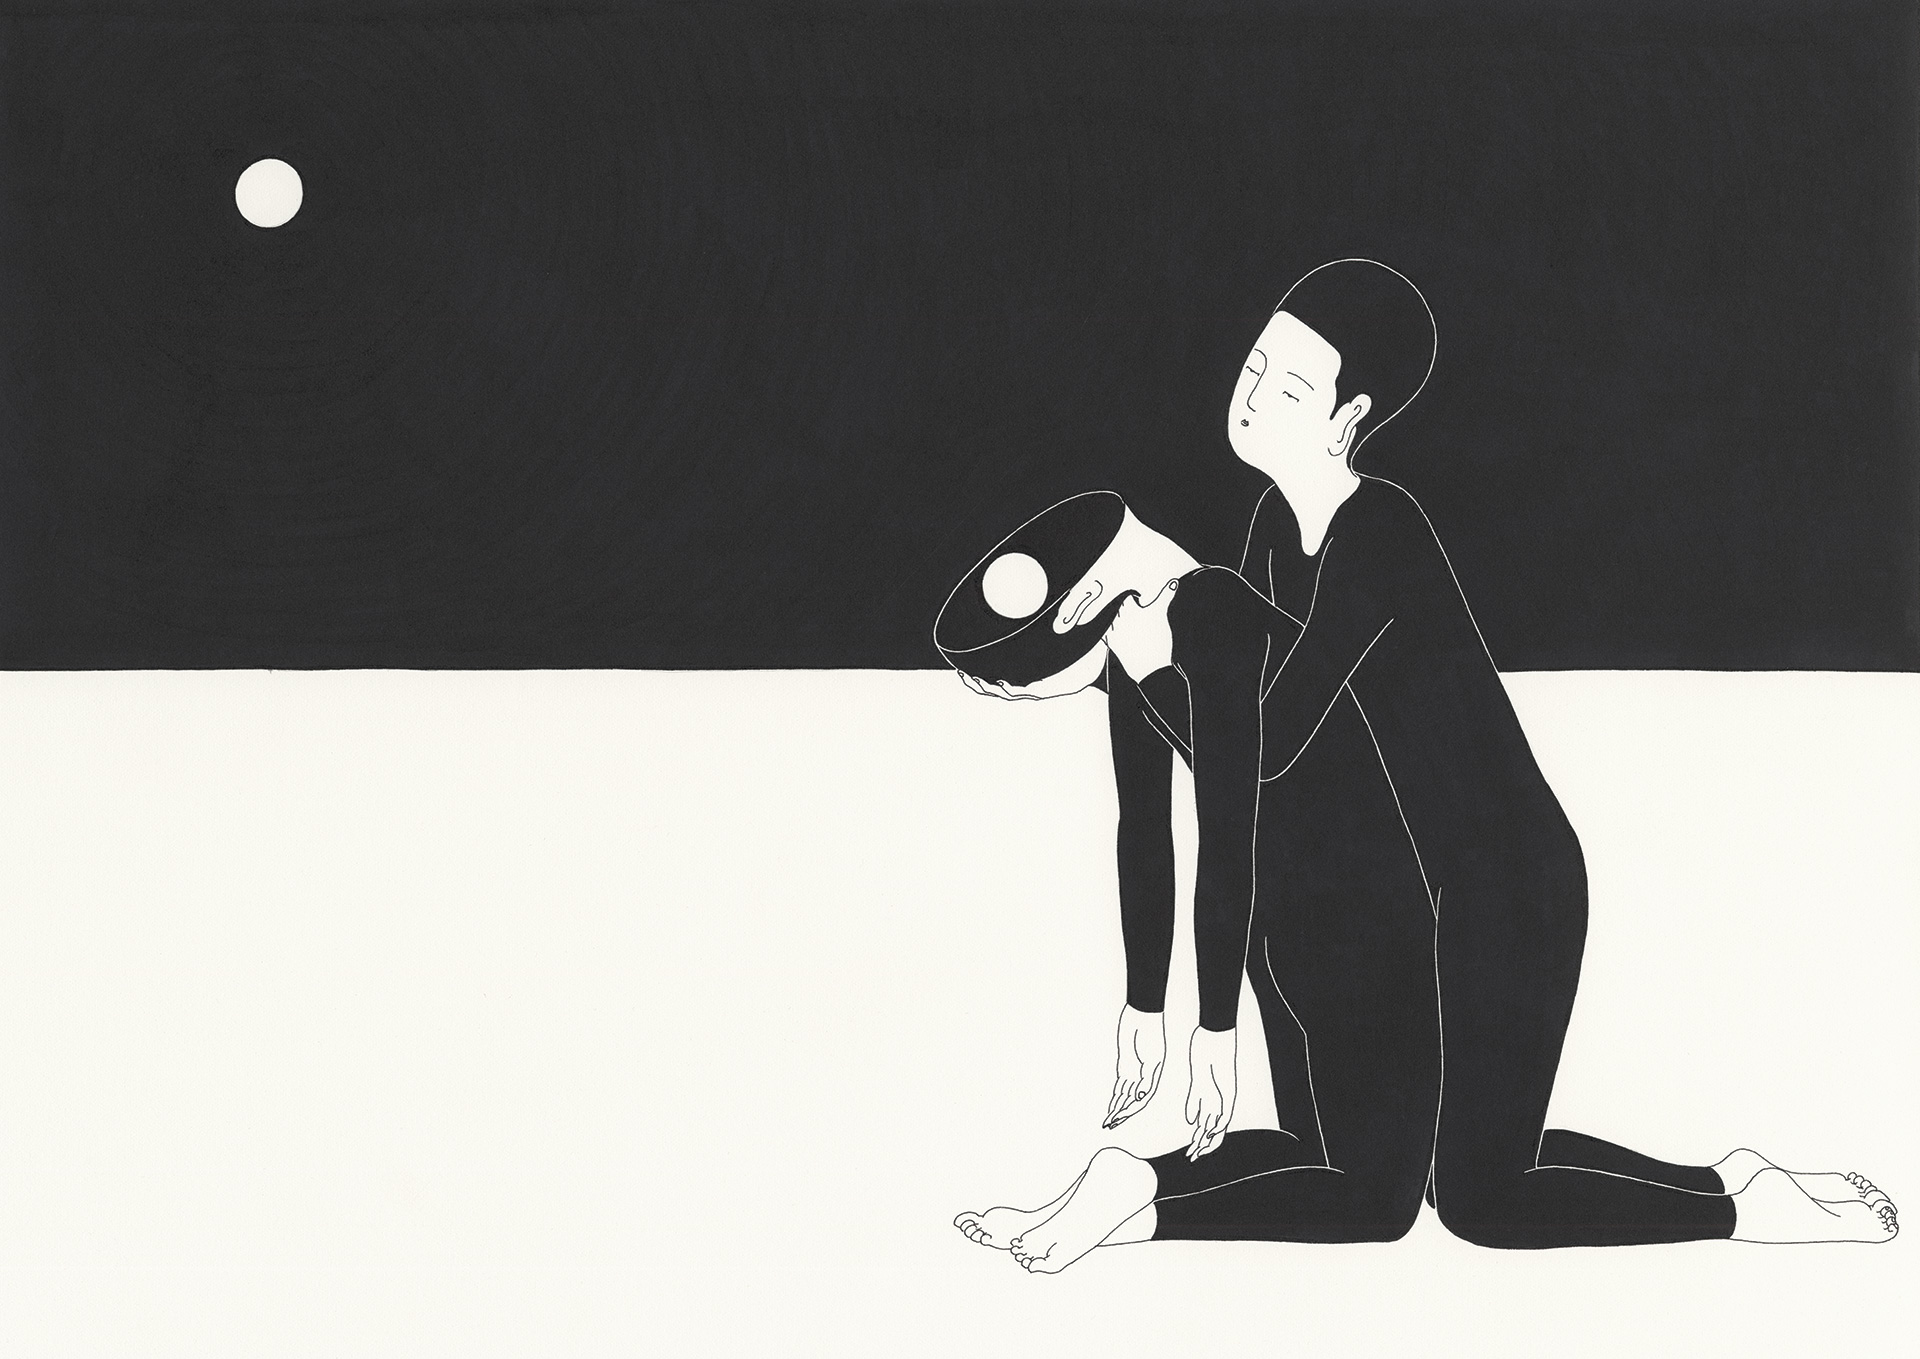 너에게서 온 빛   /   You, with the moon in the mirror   Op. 0079C - 42 x 29.7 cm, 종이에 펜, 마커 / Pigment liner and marker on paper, 2014 Commissioned by Sea Oleena